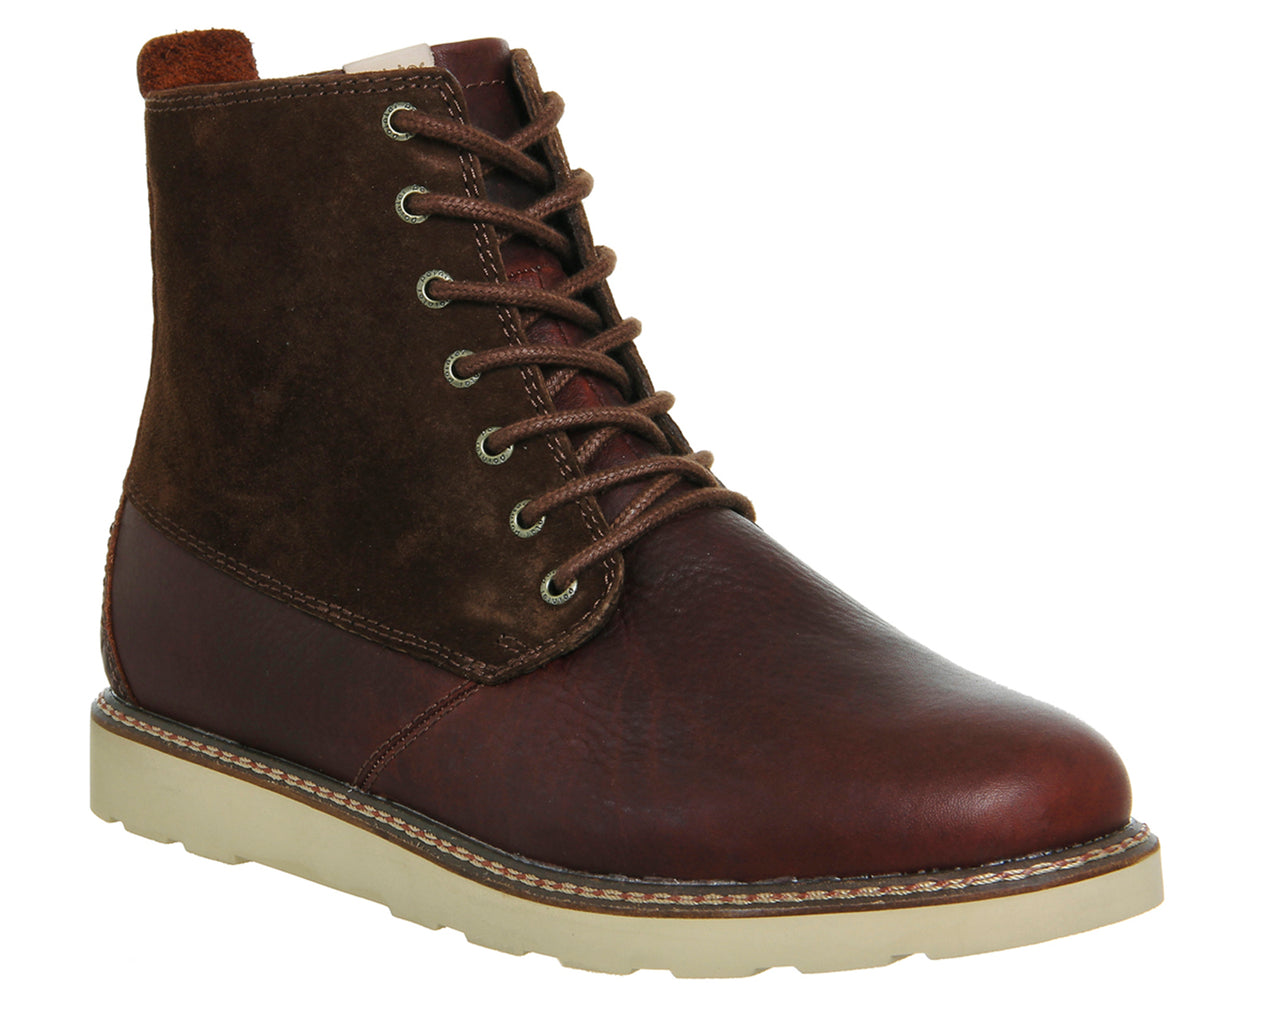 Mens Pointer Caine Lace Up Boot Carafe Coconut Shell Suede Leather